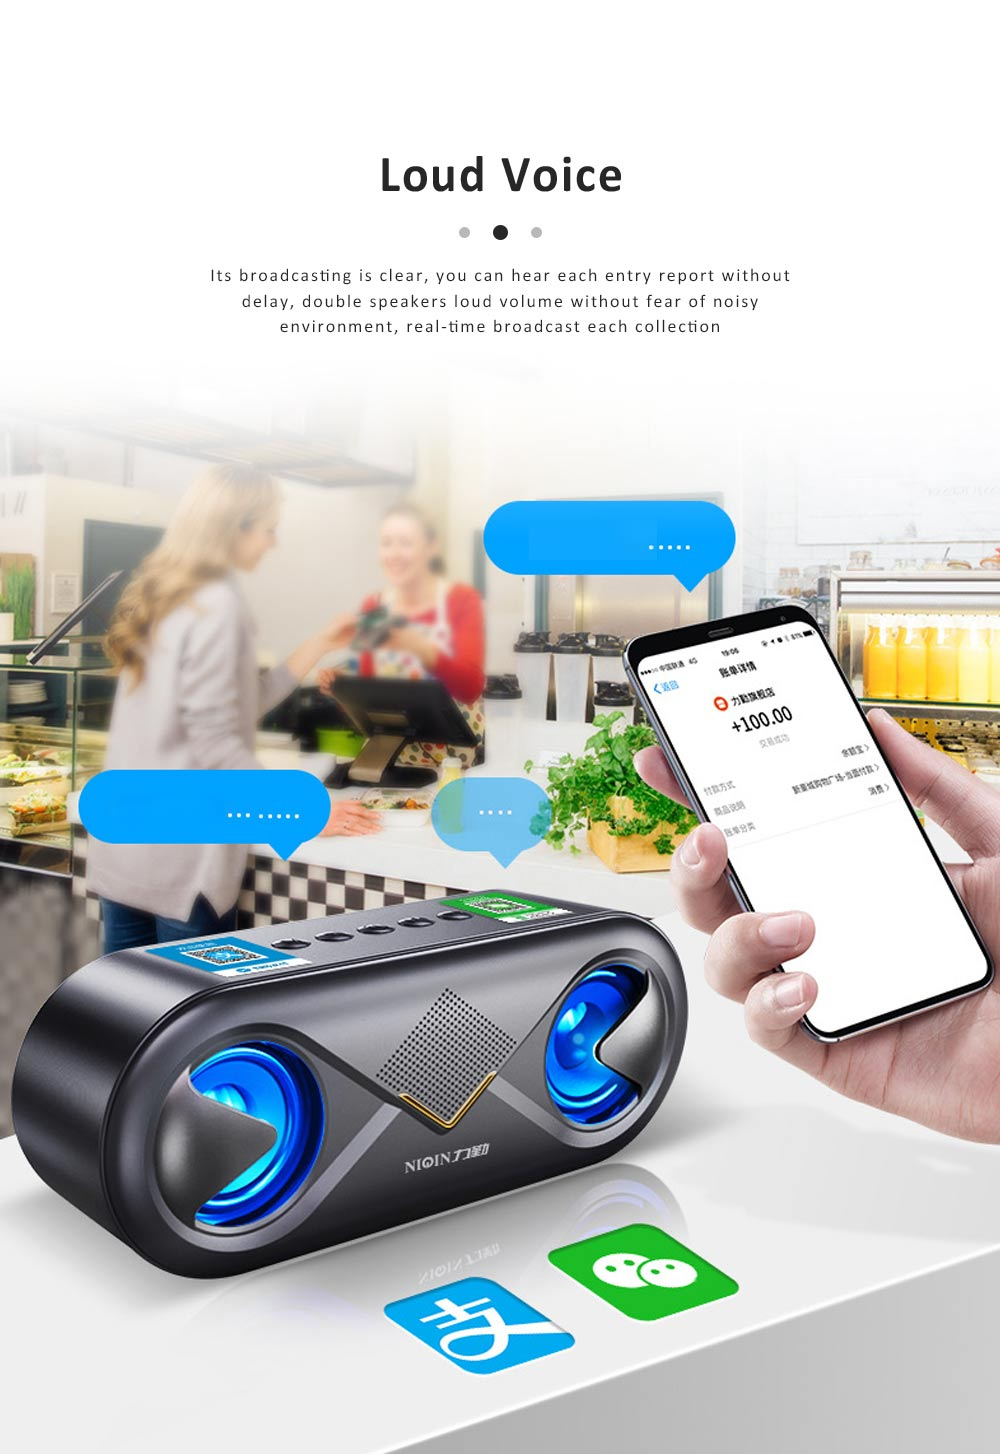 Cellular Wireless Bluetooth Speaker, Portable Desktop Home Speaker, Bionic Eye Design Subwoofer with Alarm Clock 3